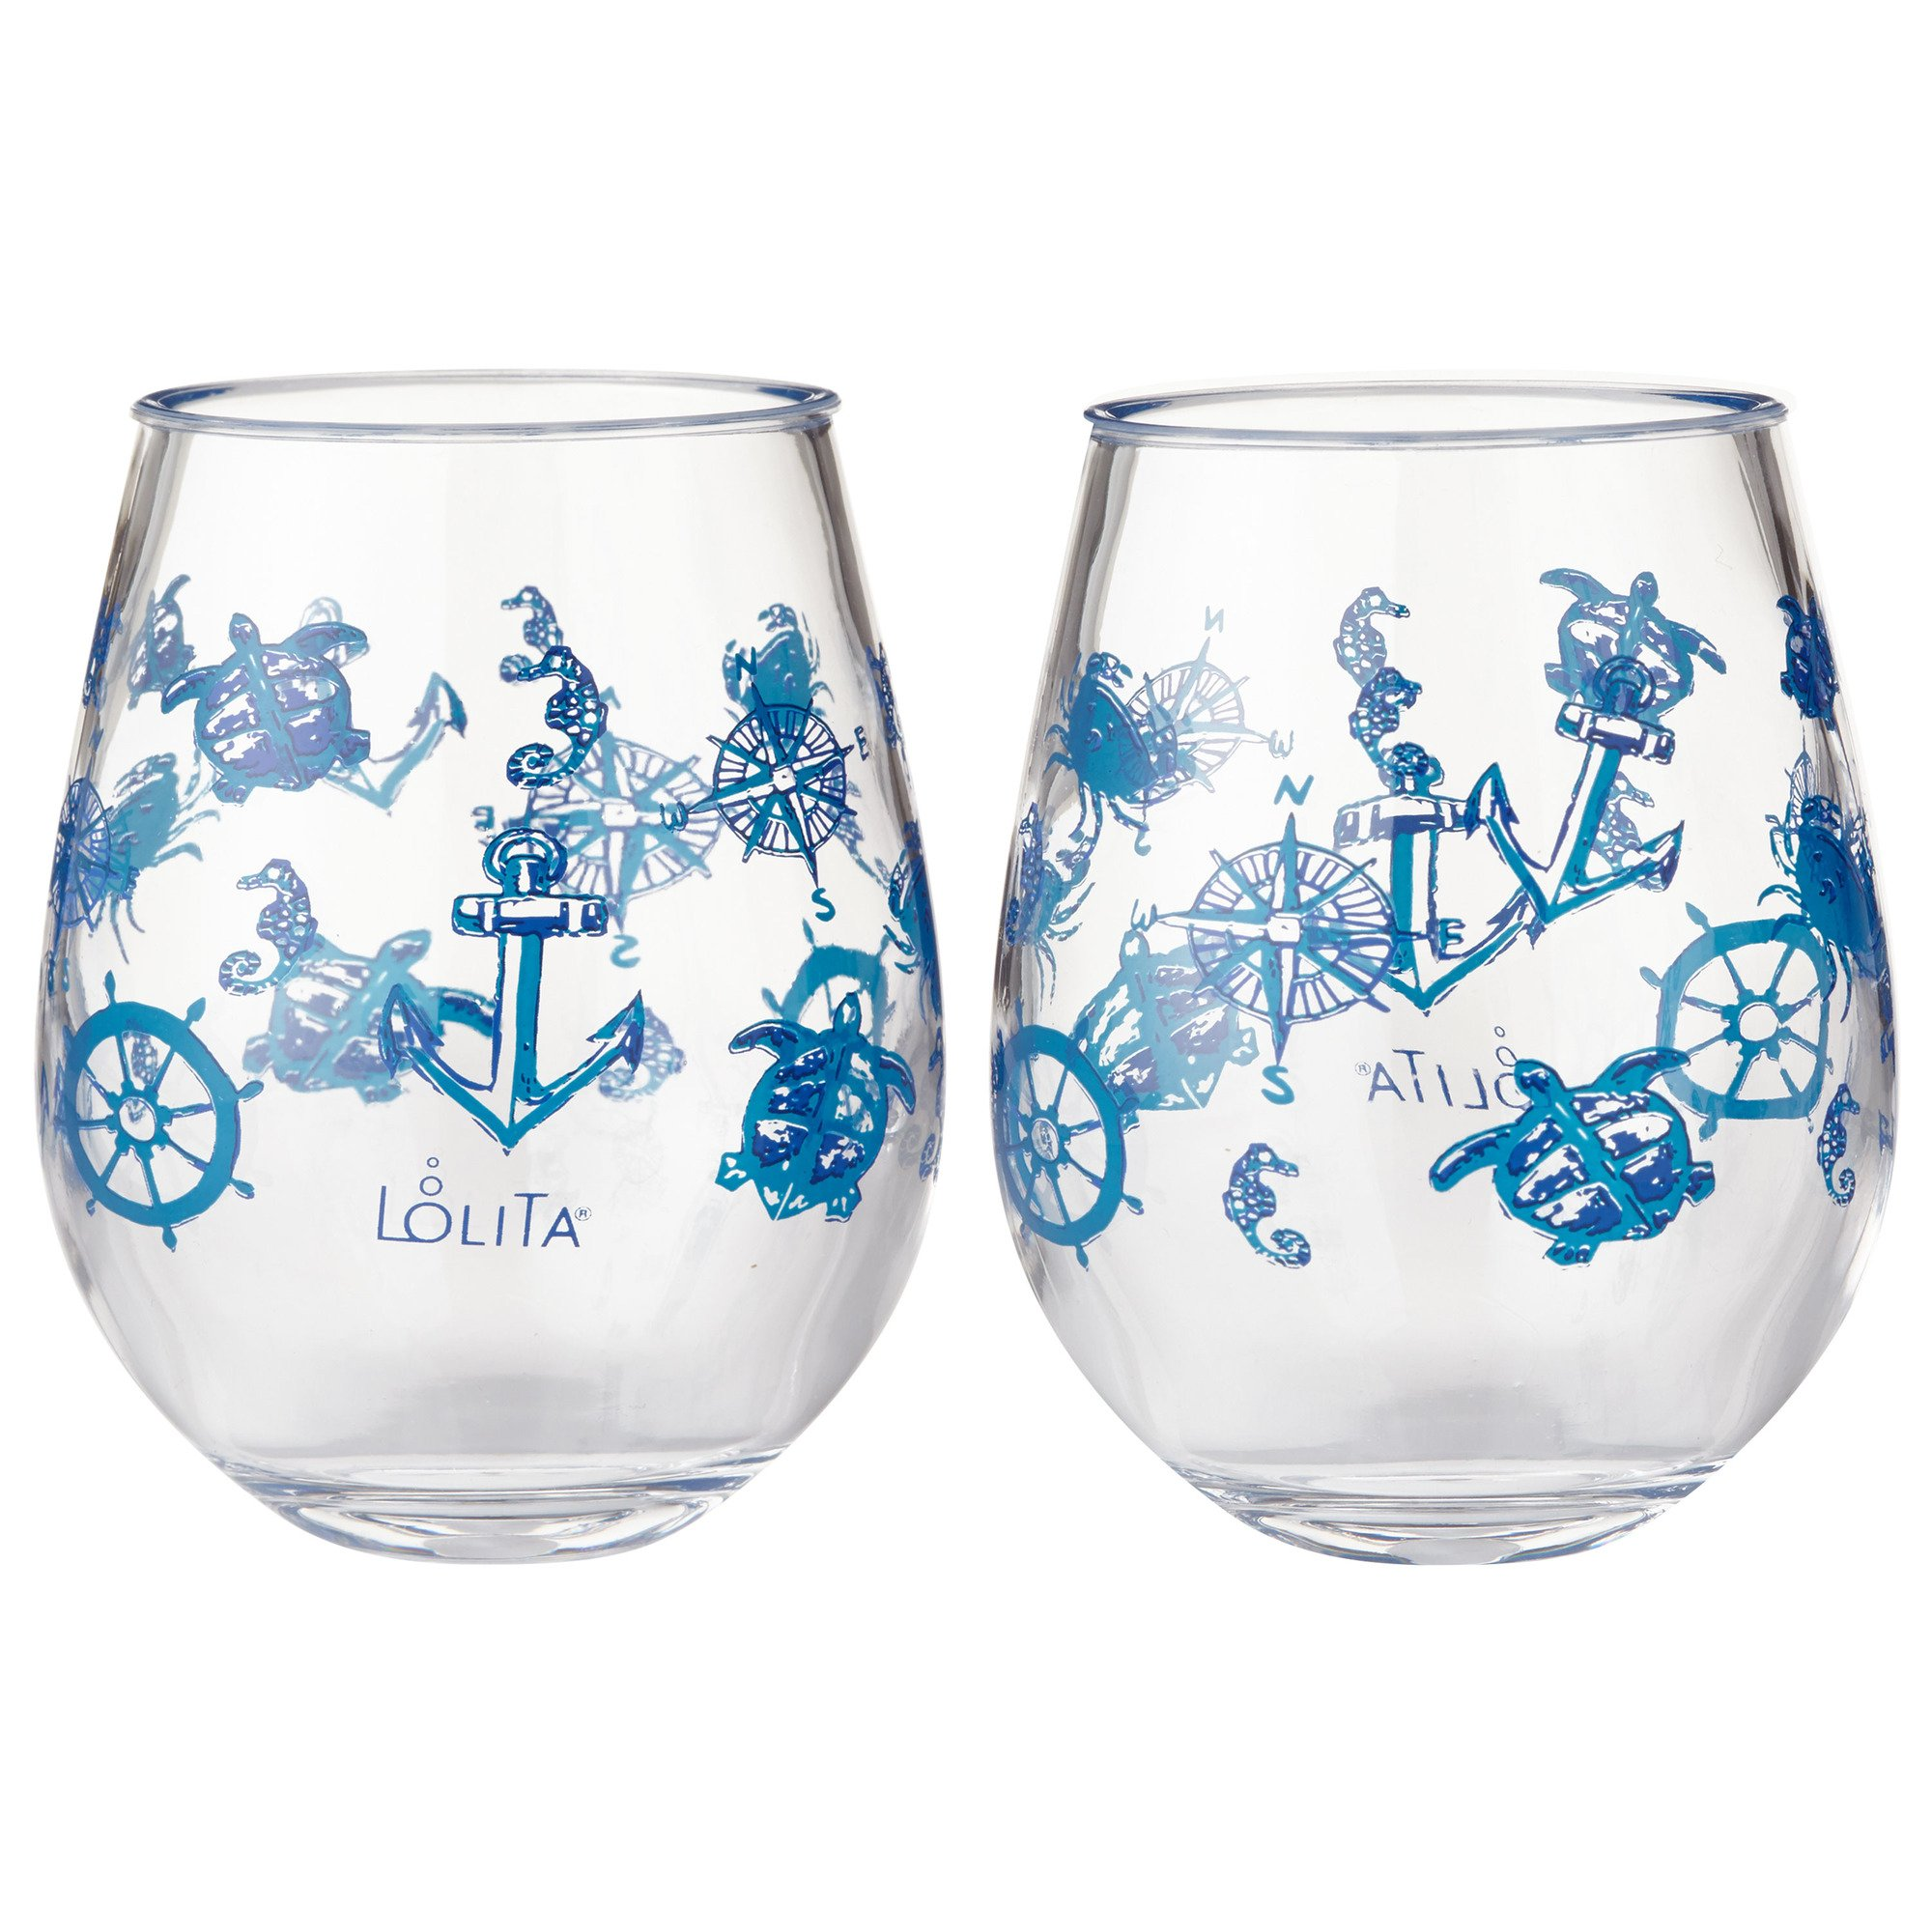 Enesco Designs by Lolita Set Sail Acrylic Stemless Wine Glasses, Set of 2, 17 oz.